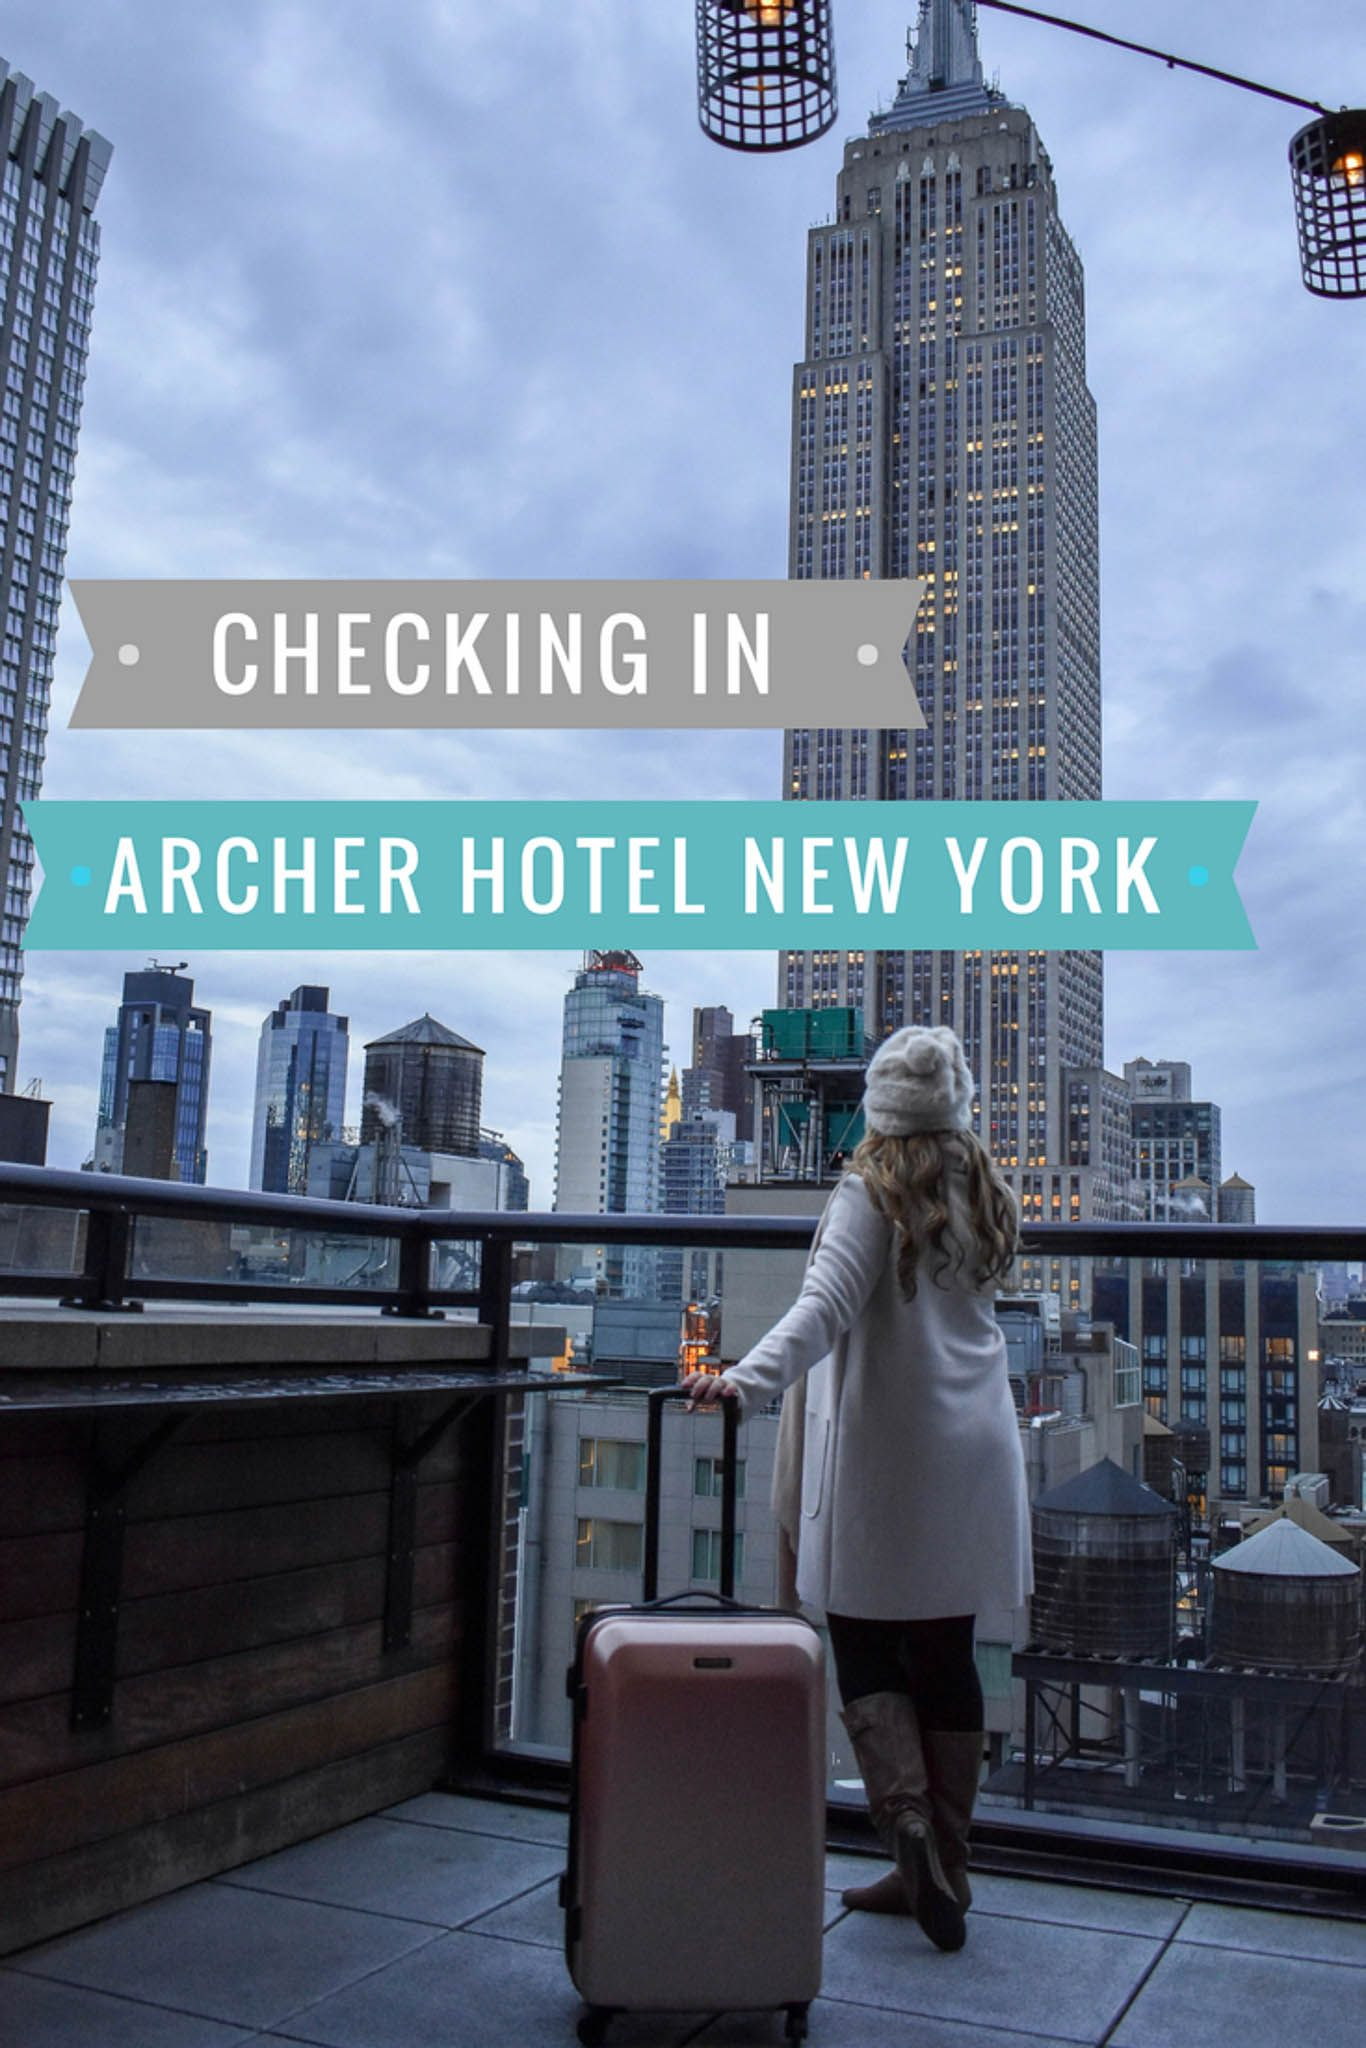 New York Hotel Online Coupon Printables 20 Off